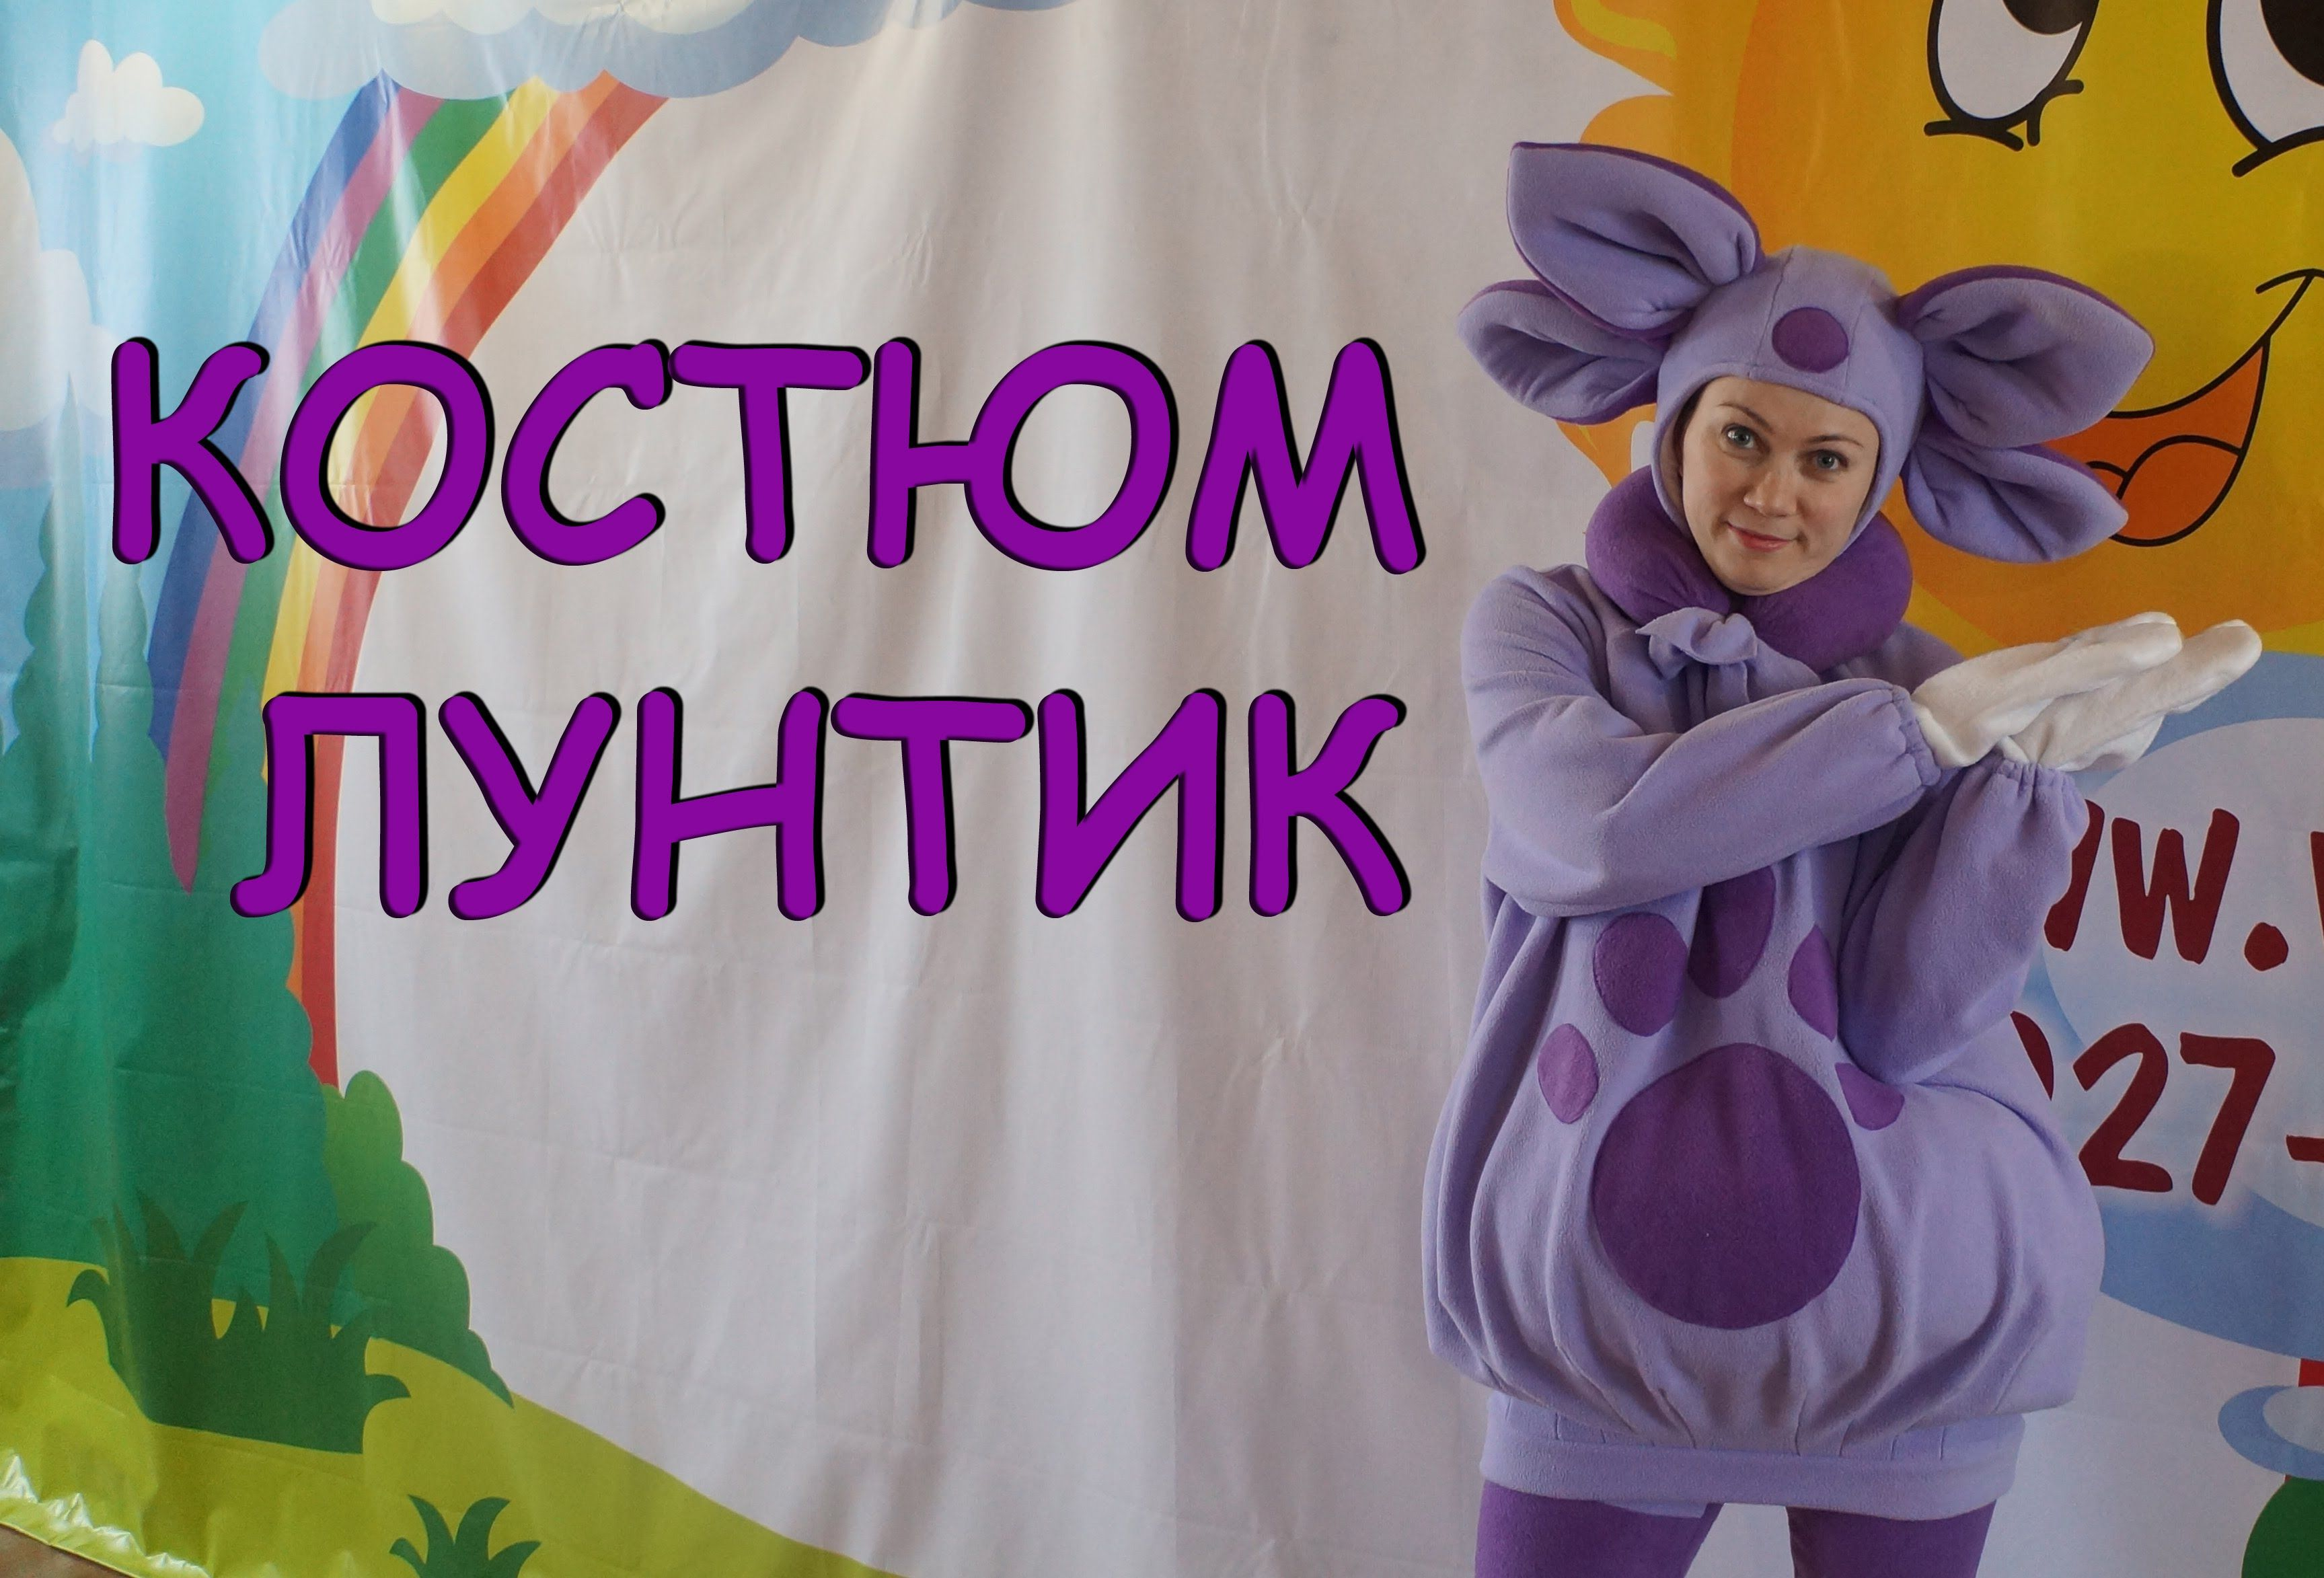 Luntik costume do it yourself 58